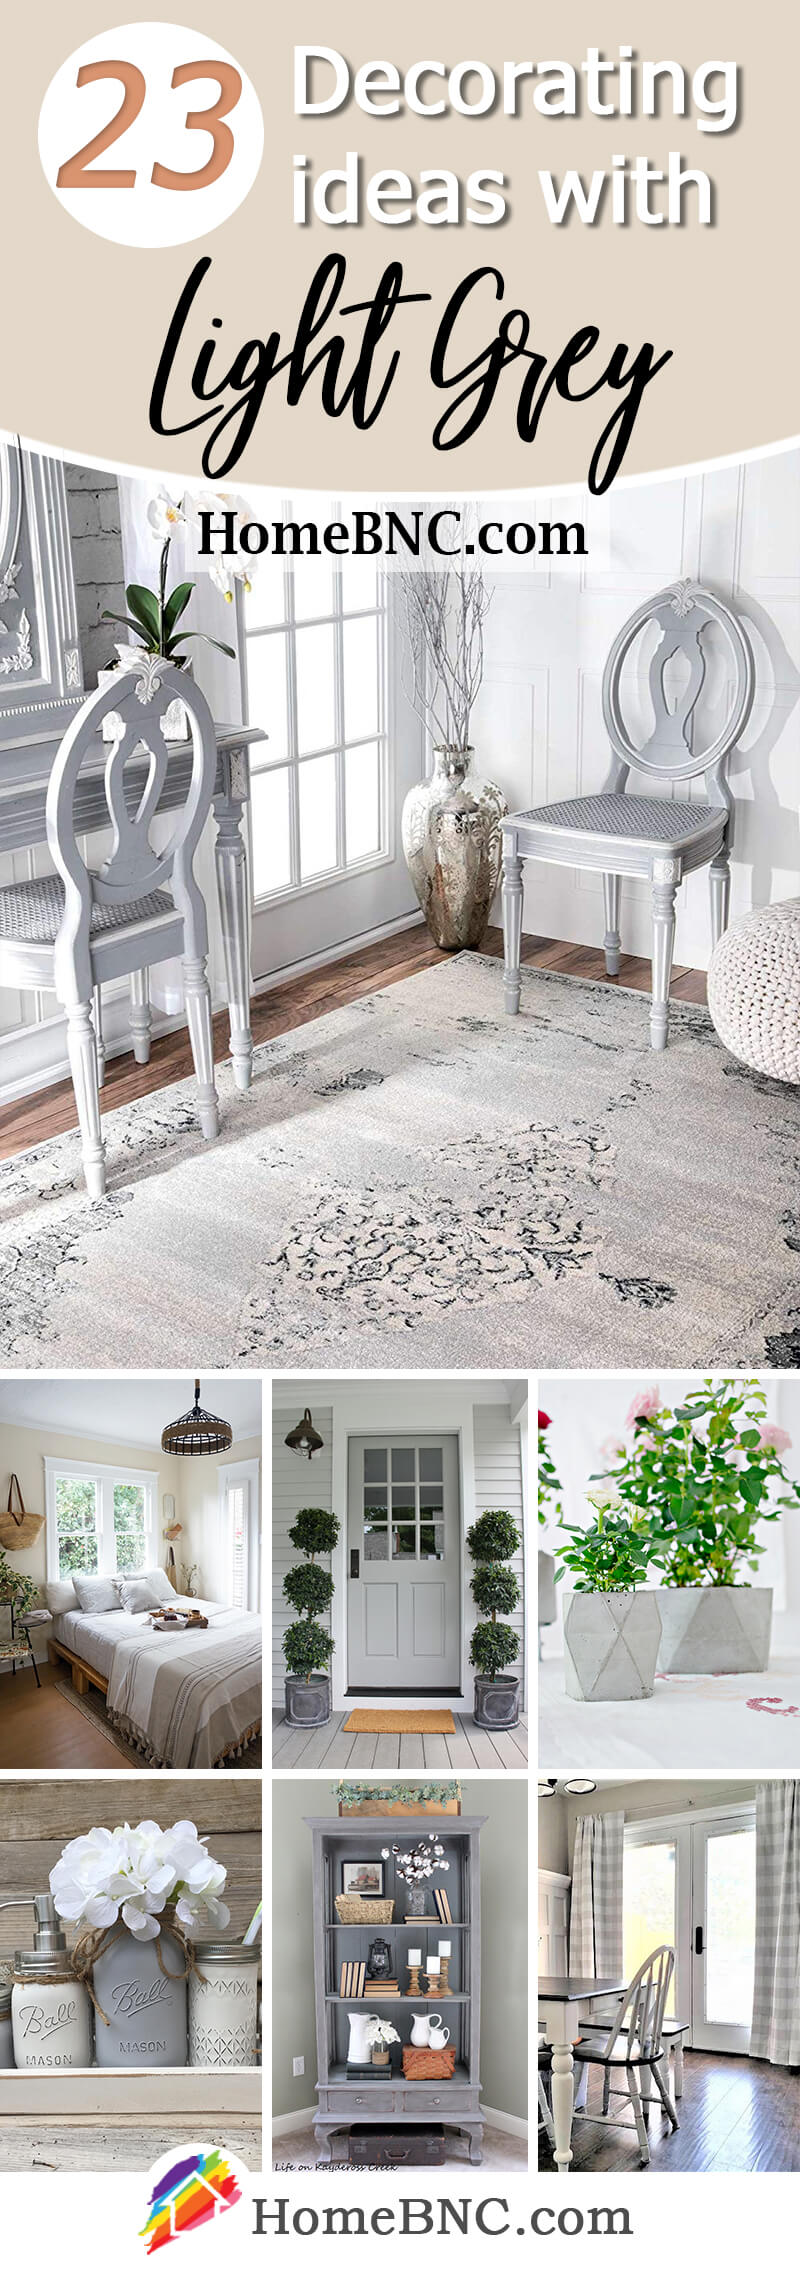 23 Best Light Grey Decorating Ideas And Designs For 2021